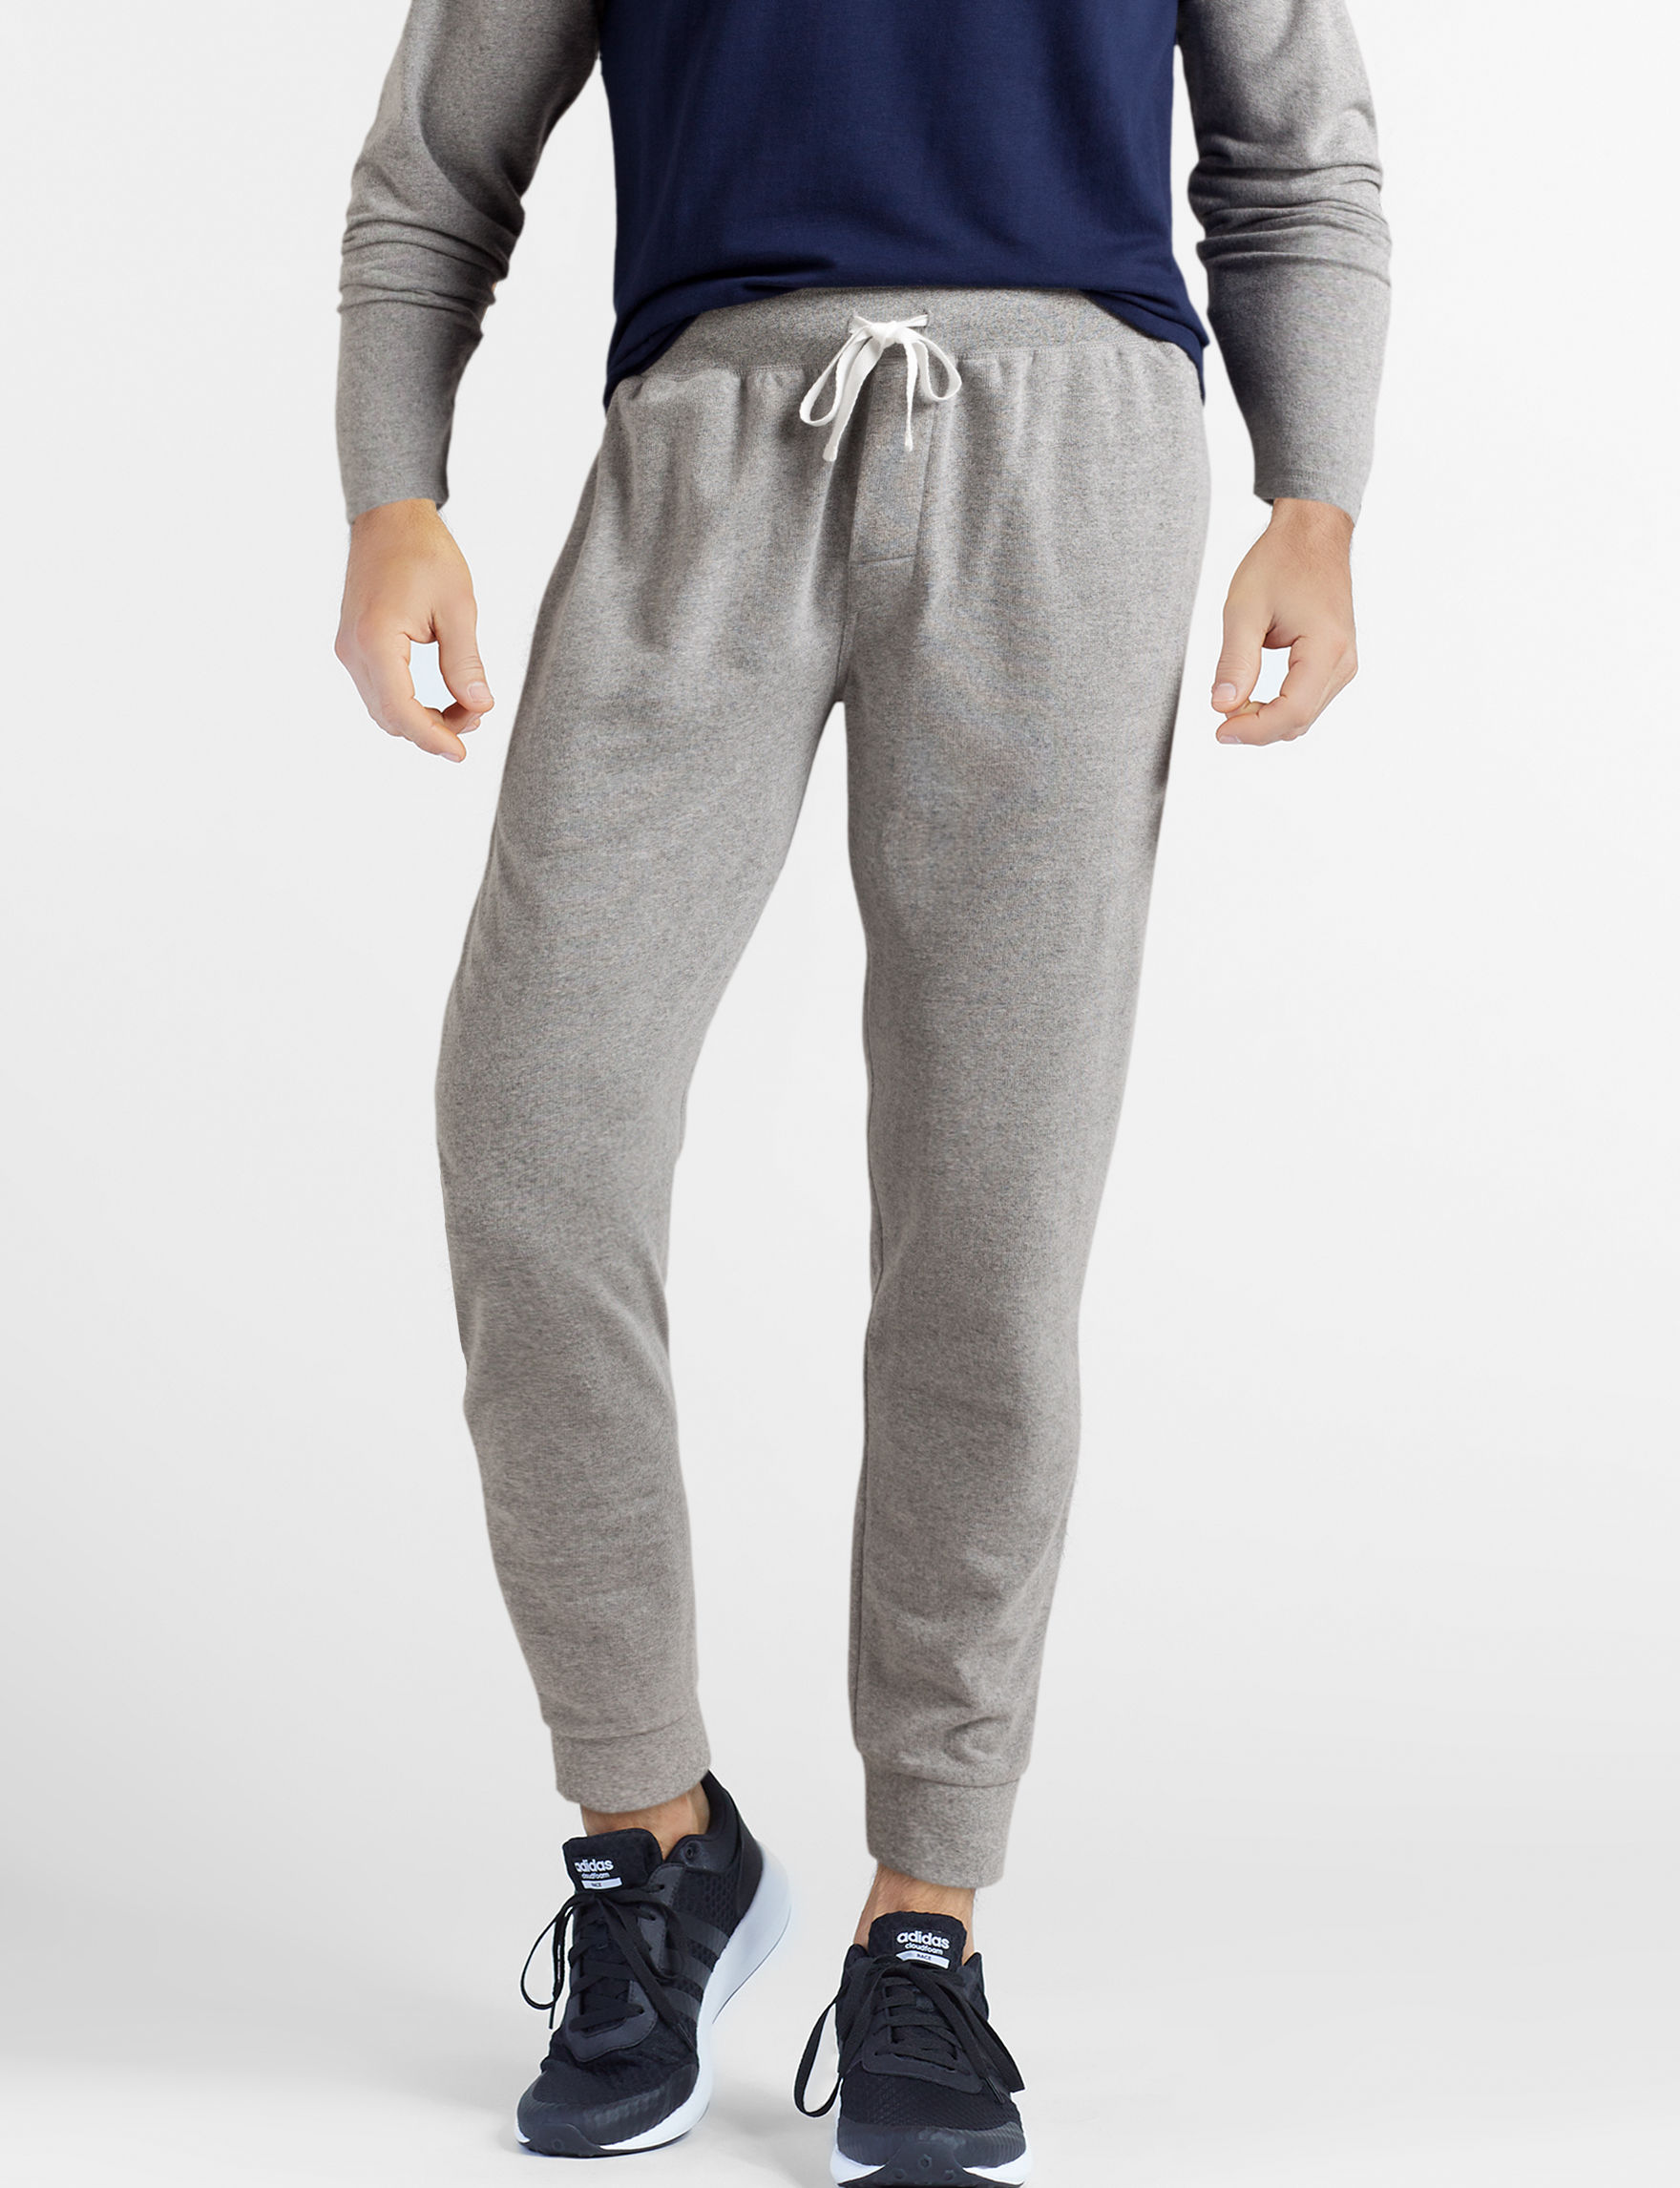 Izod Heather Grey Pajama Bottoms